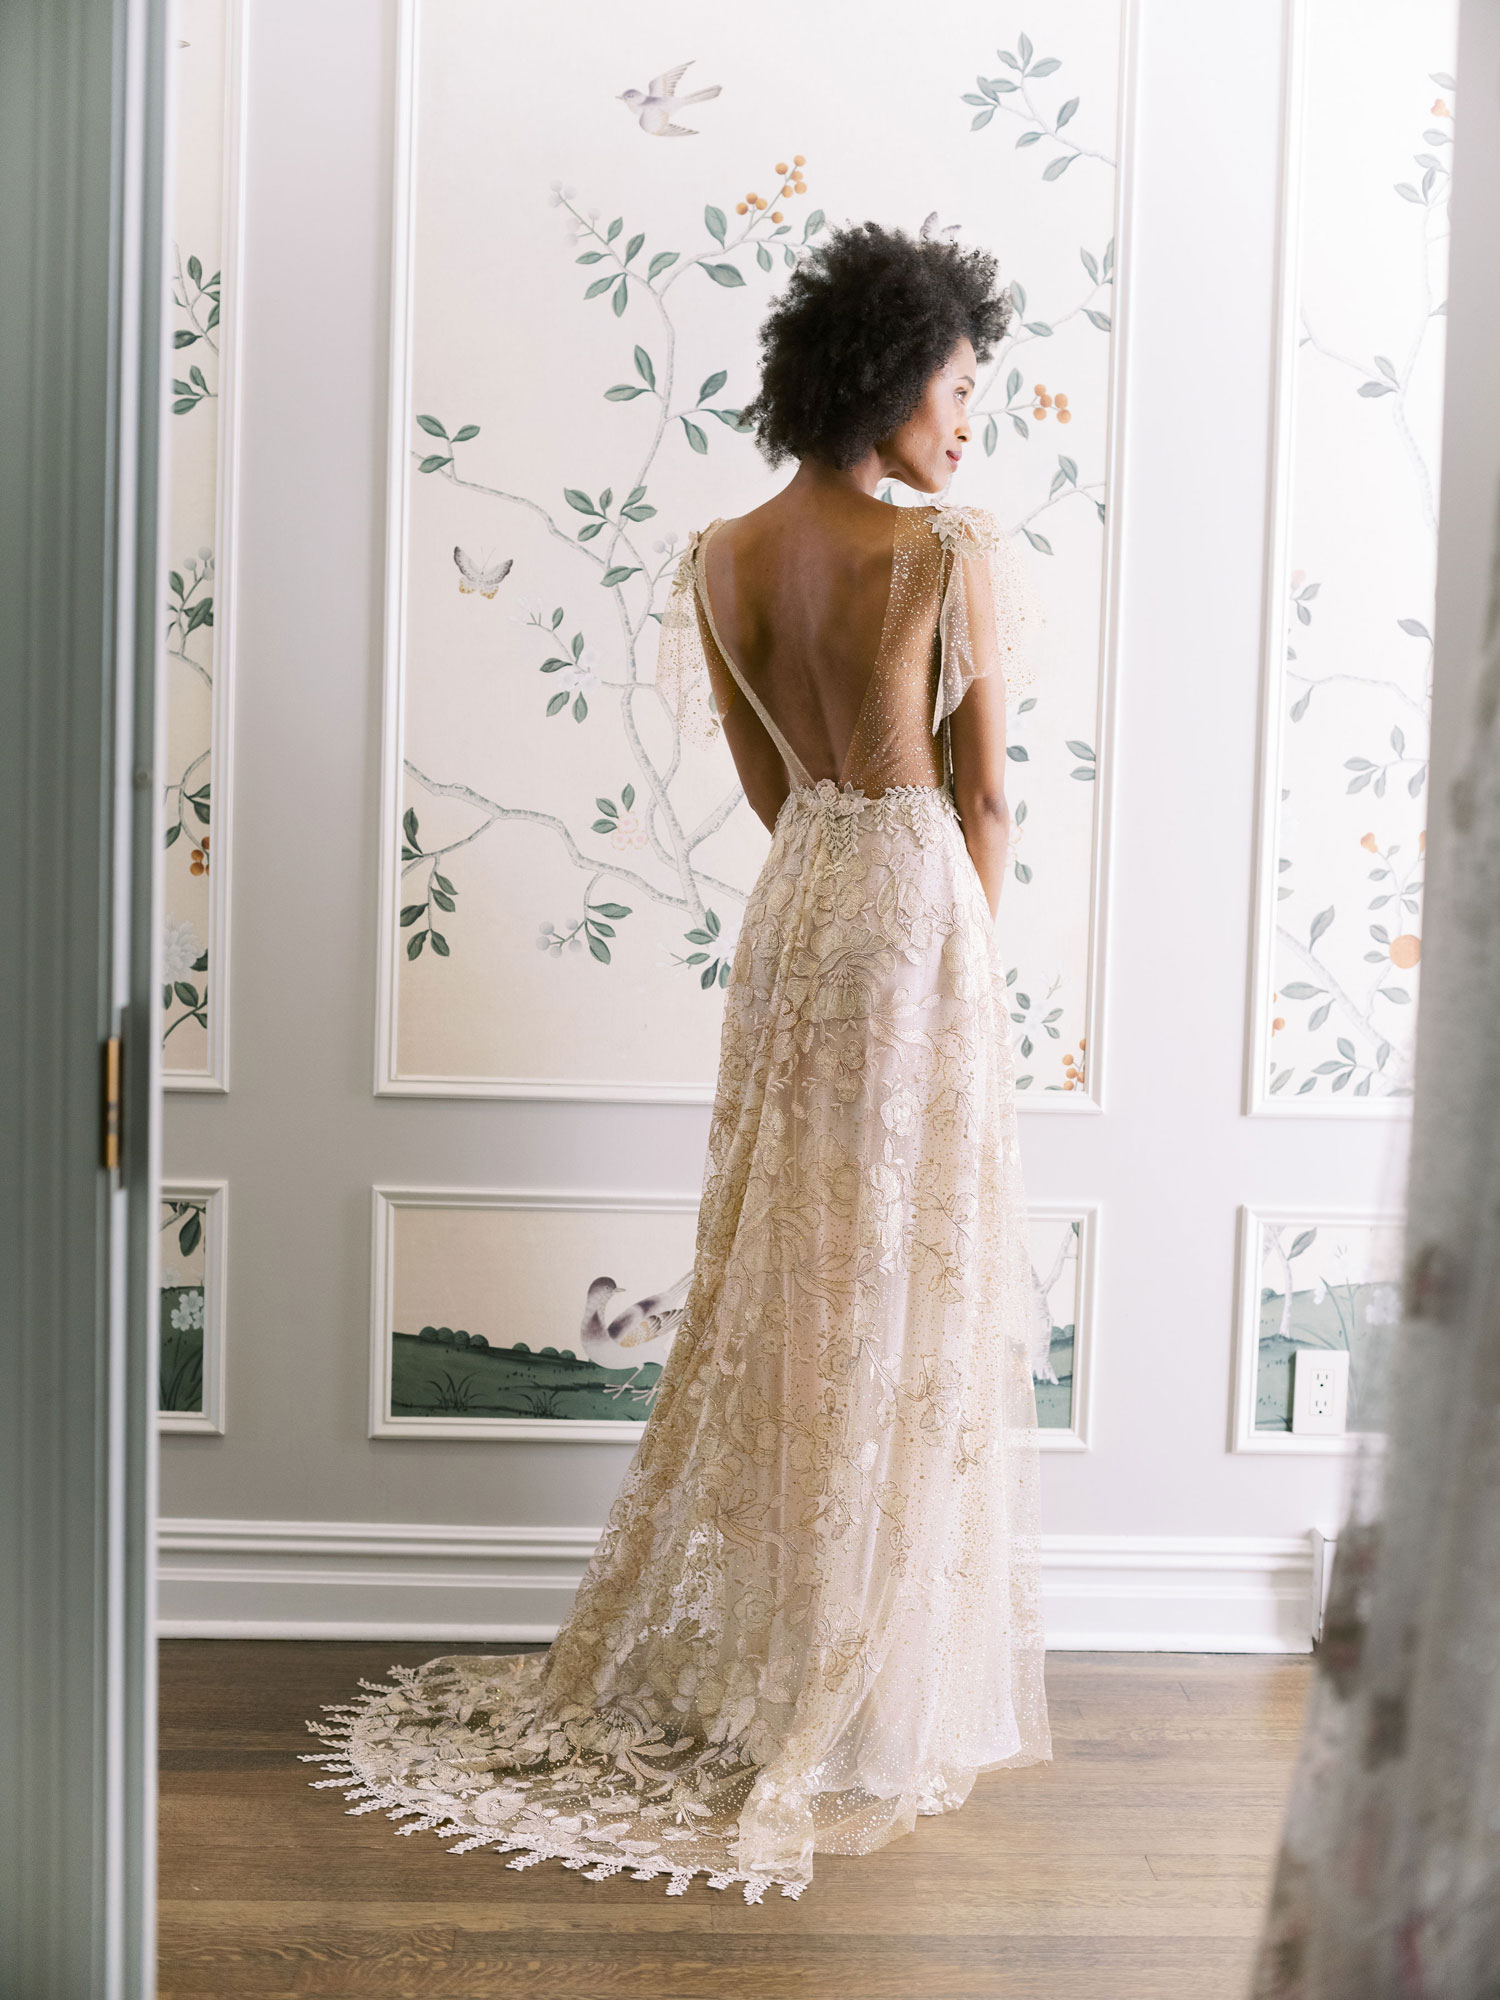 Claire Pettibone Evolution 2020 bridal collection Soleil romantic low back wedding dress